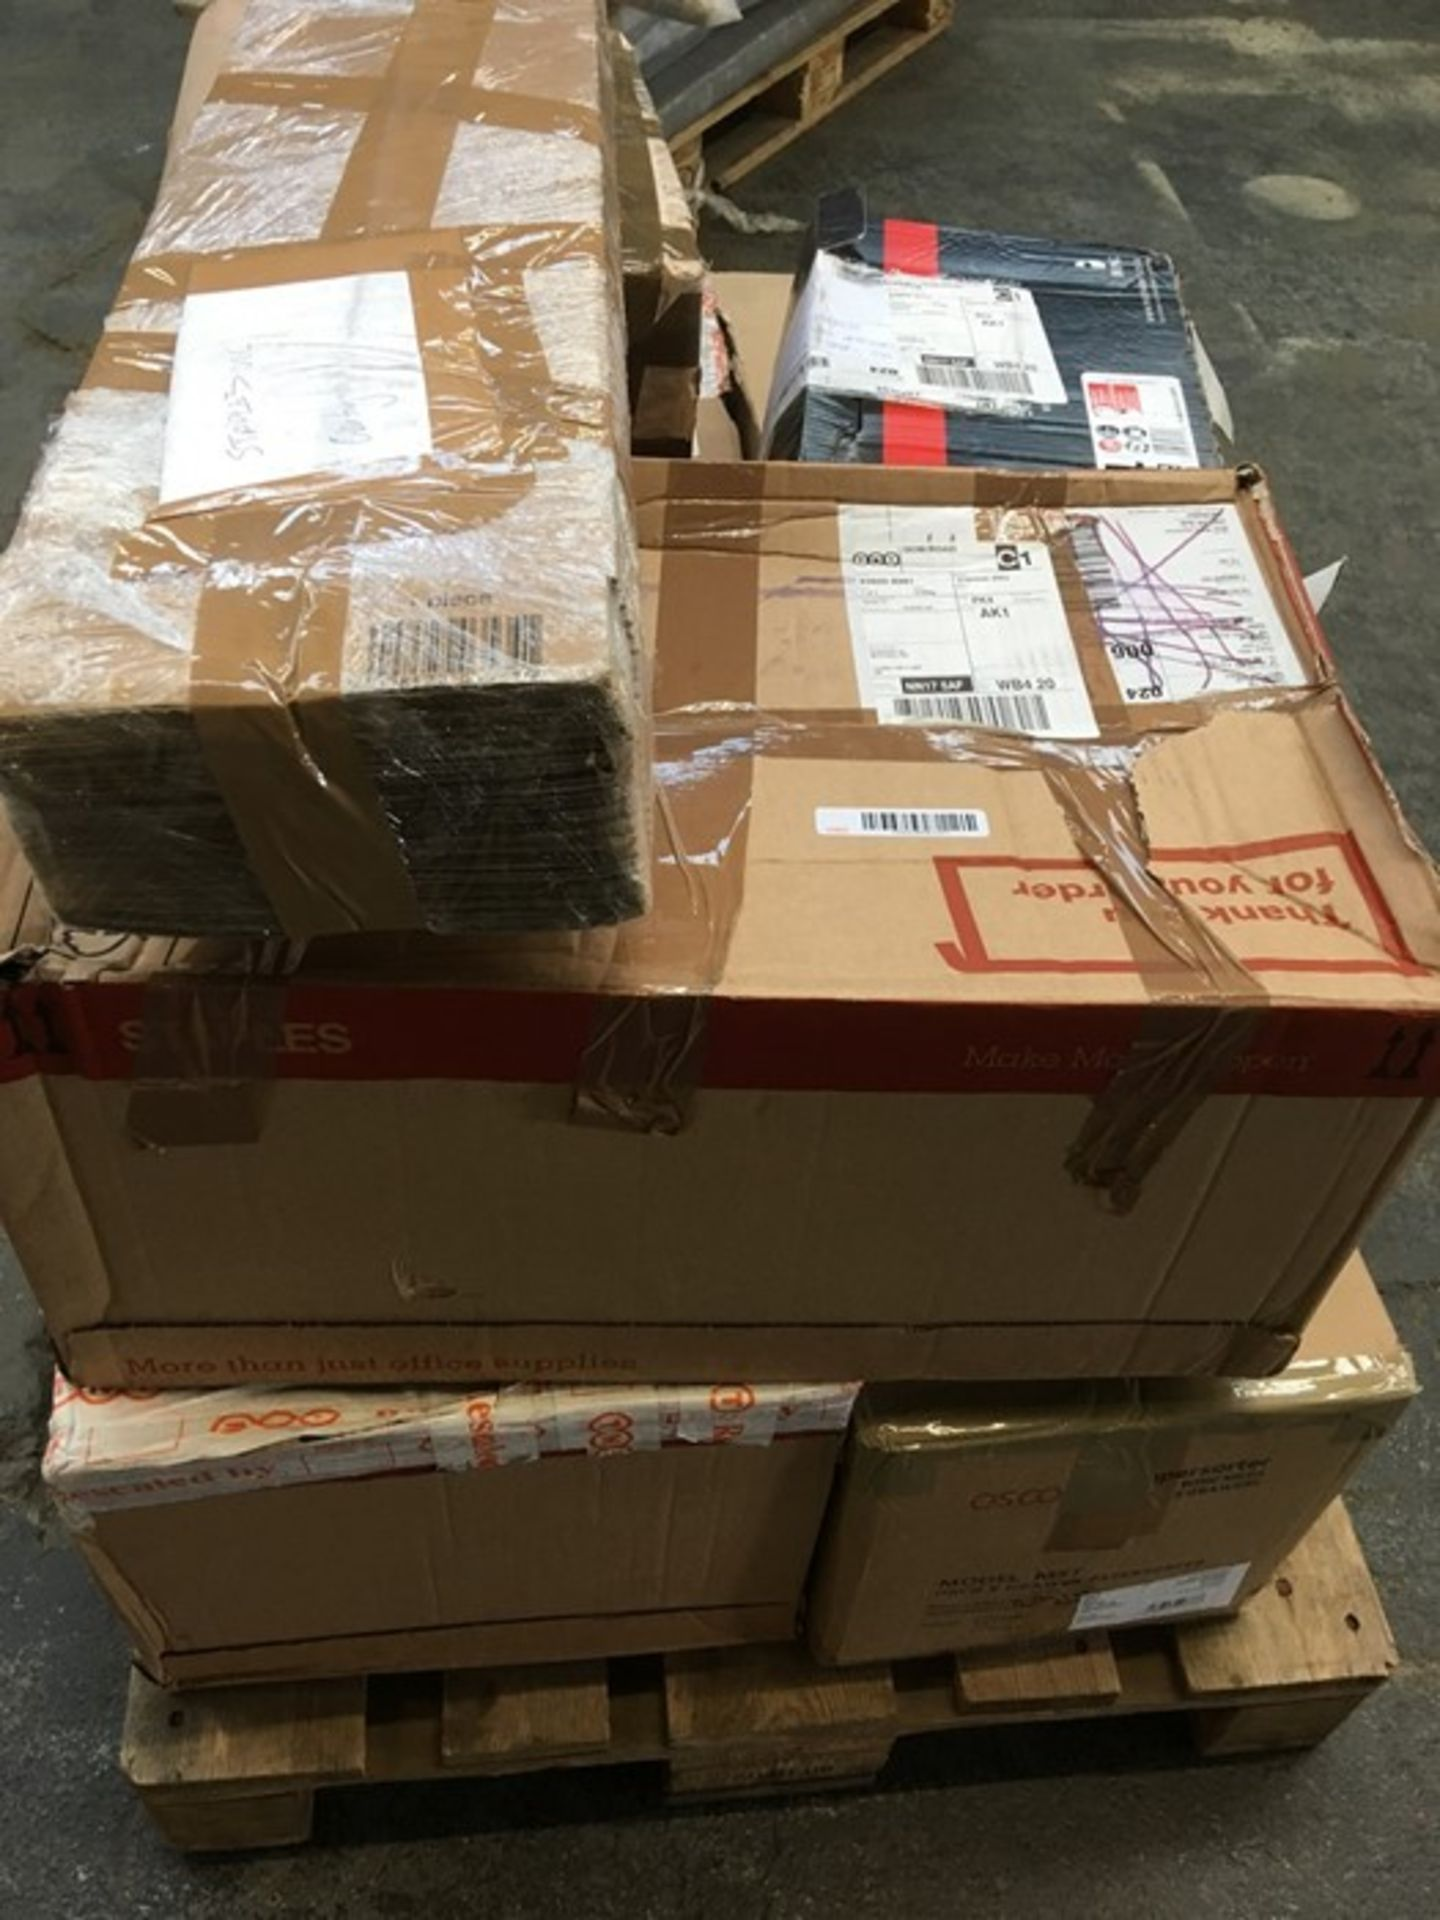 Lotto 89 - 1 LOT TO CONTAIN ASSORTED OFFICE EQUIPMENT / INCLUDING DESKTOP DRAWERS, SHOES AND CARDBOARD